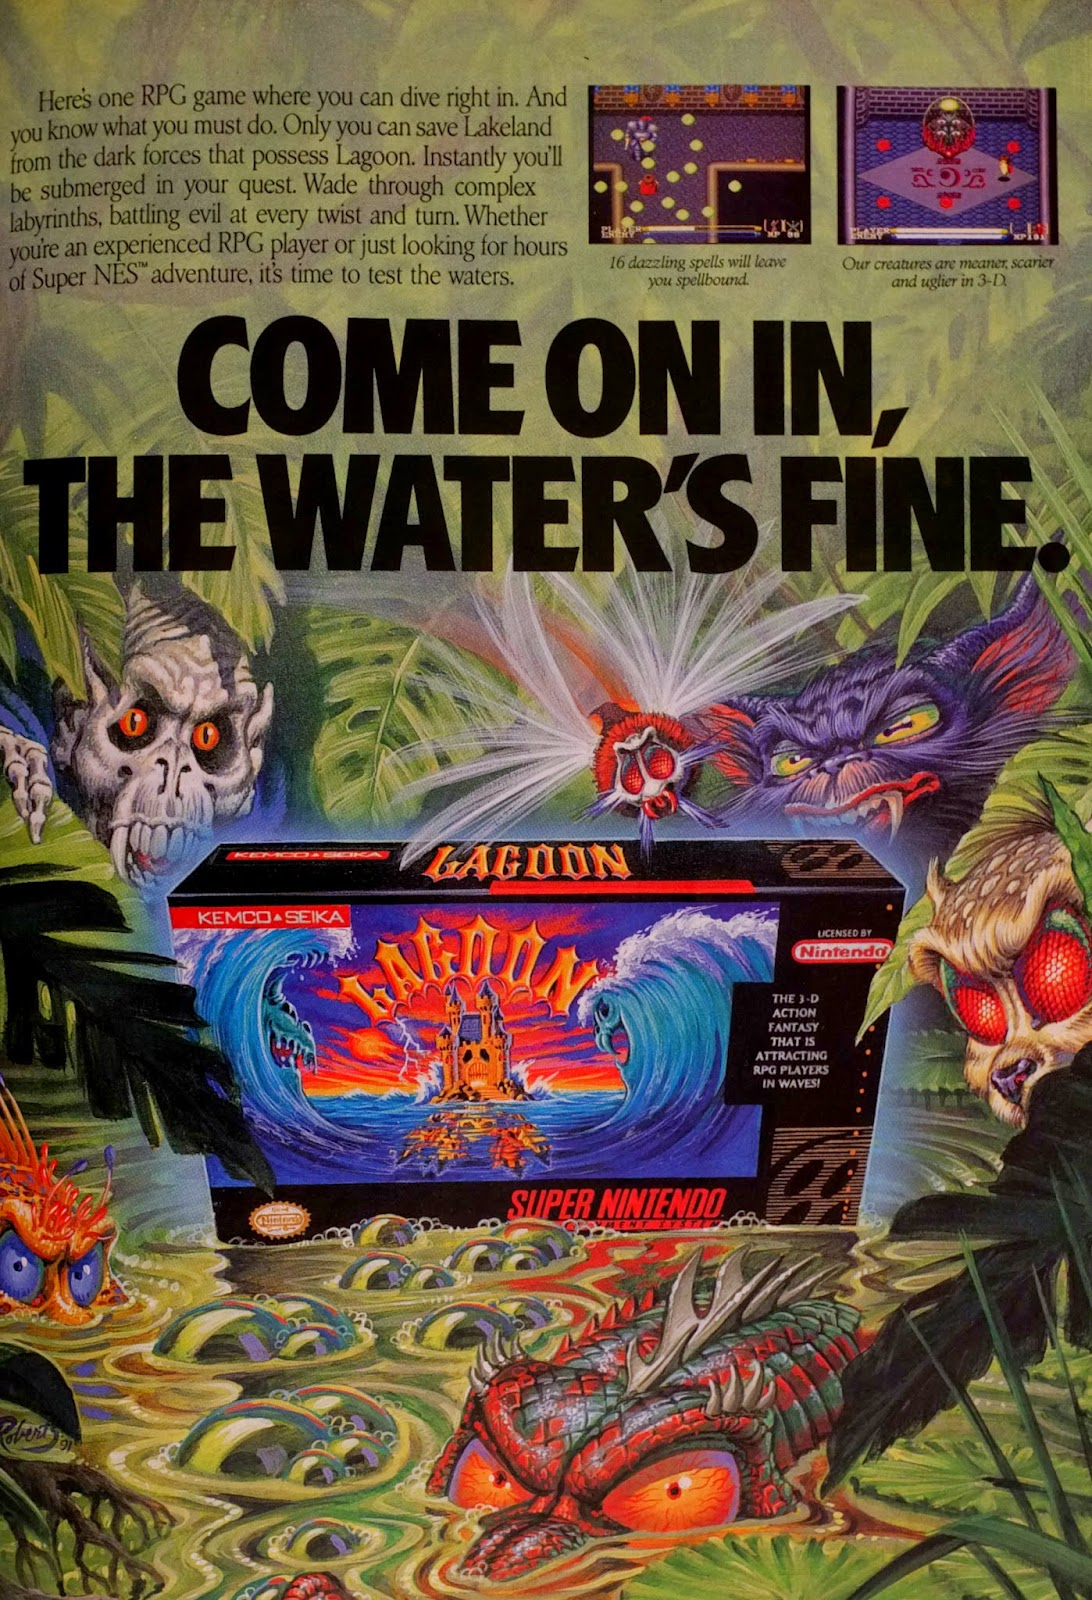 Lagoon for SNES advertisement